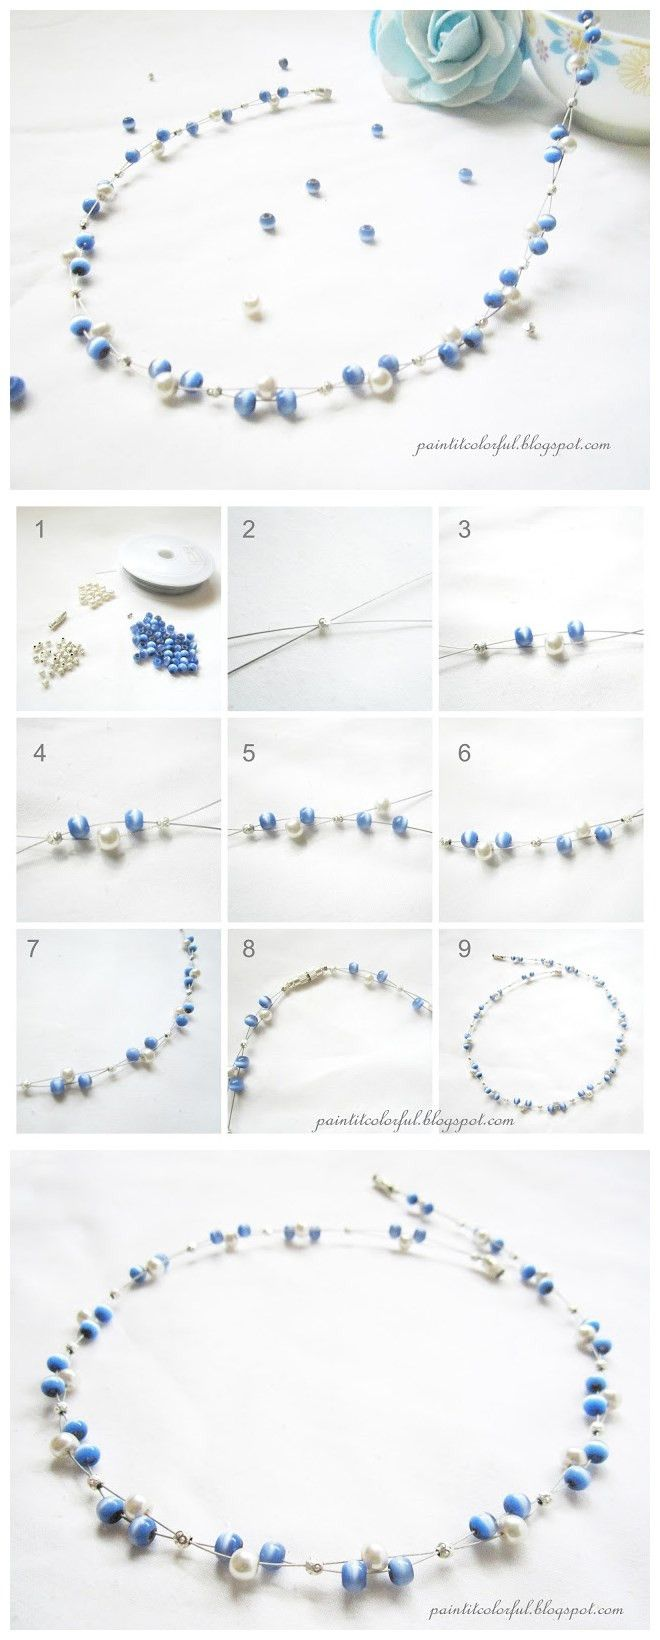 Easy Handmade Elegant Beaded Necklace Designs #tutorial #beadingnecklace #handmadenecklace #pandahall